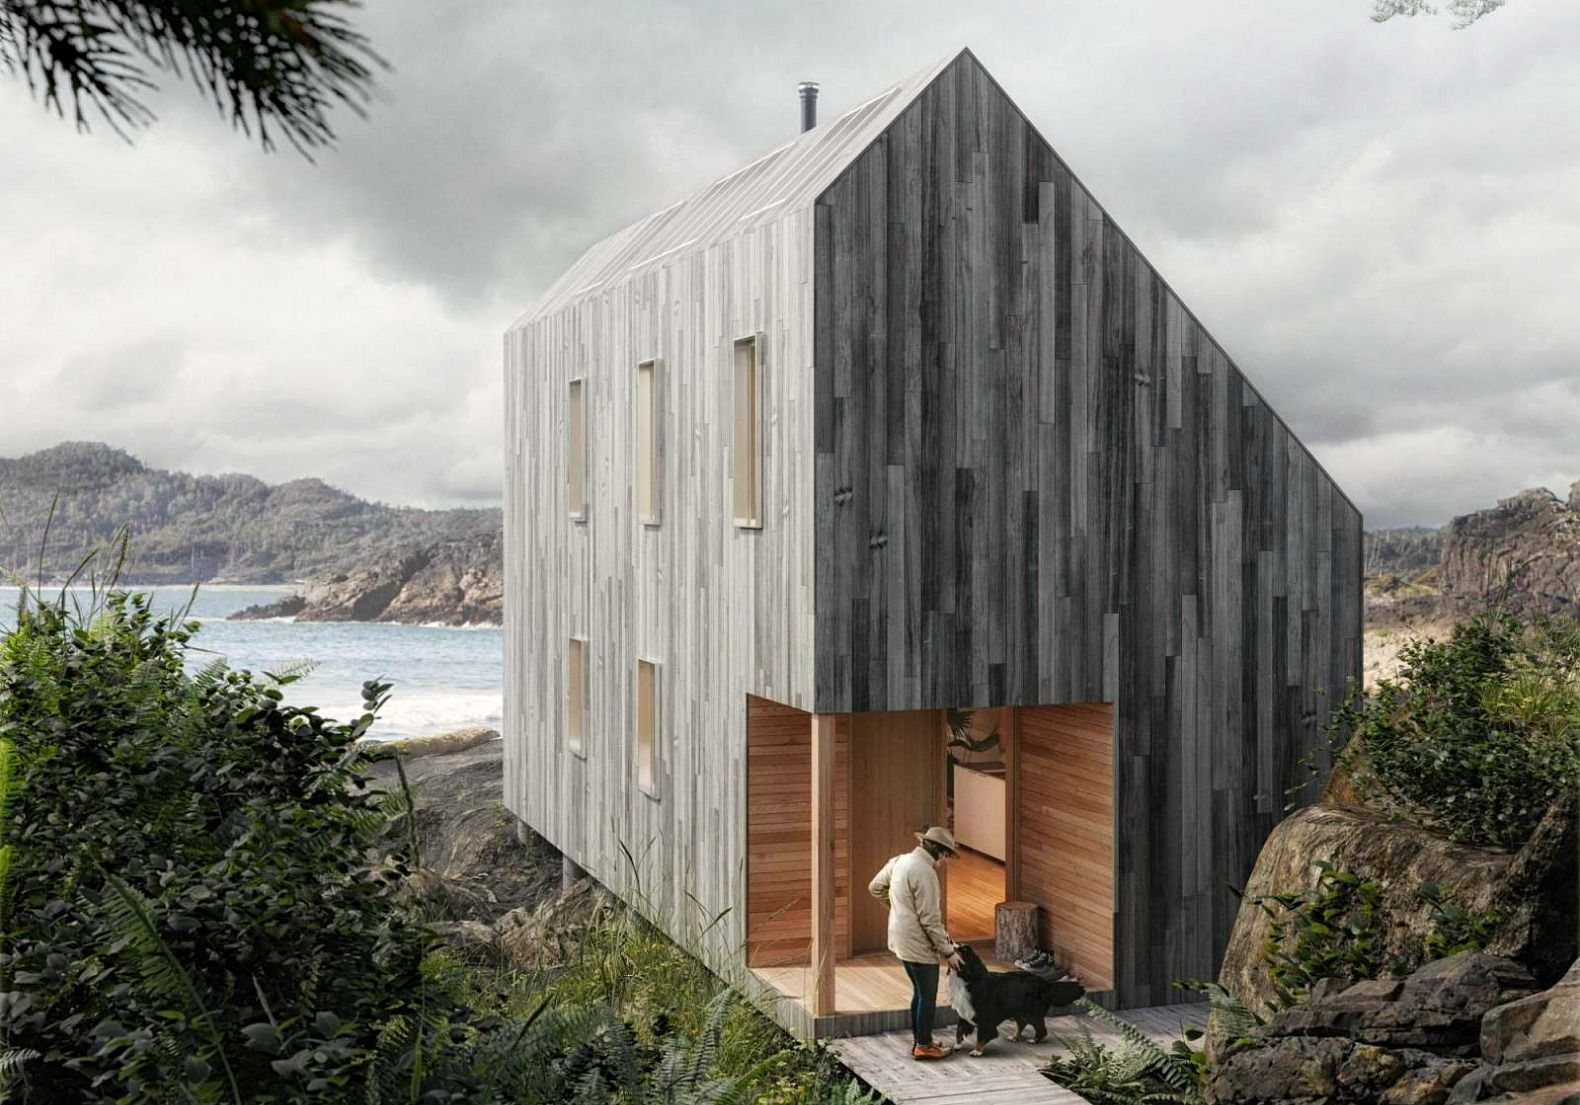 Affordable Flat Pack Surf Shack Shelter Operates Completely Off The Grid